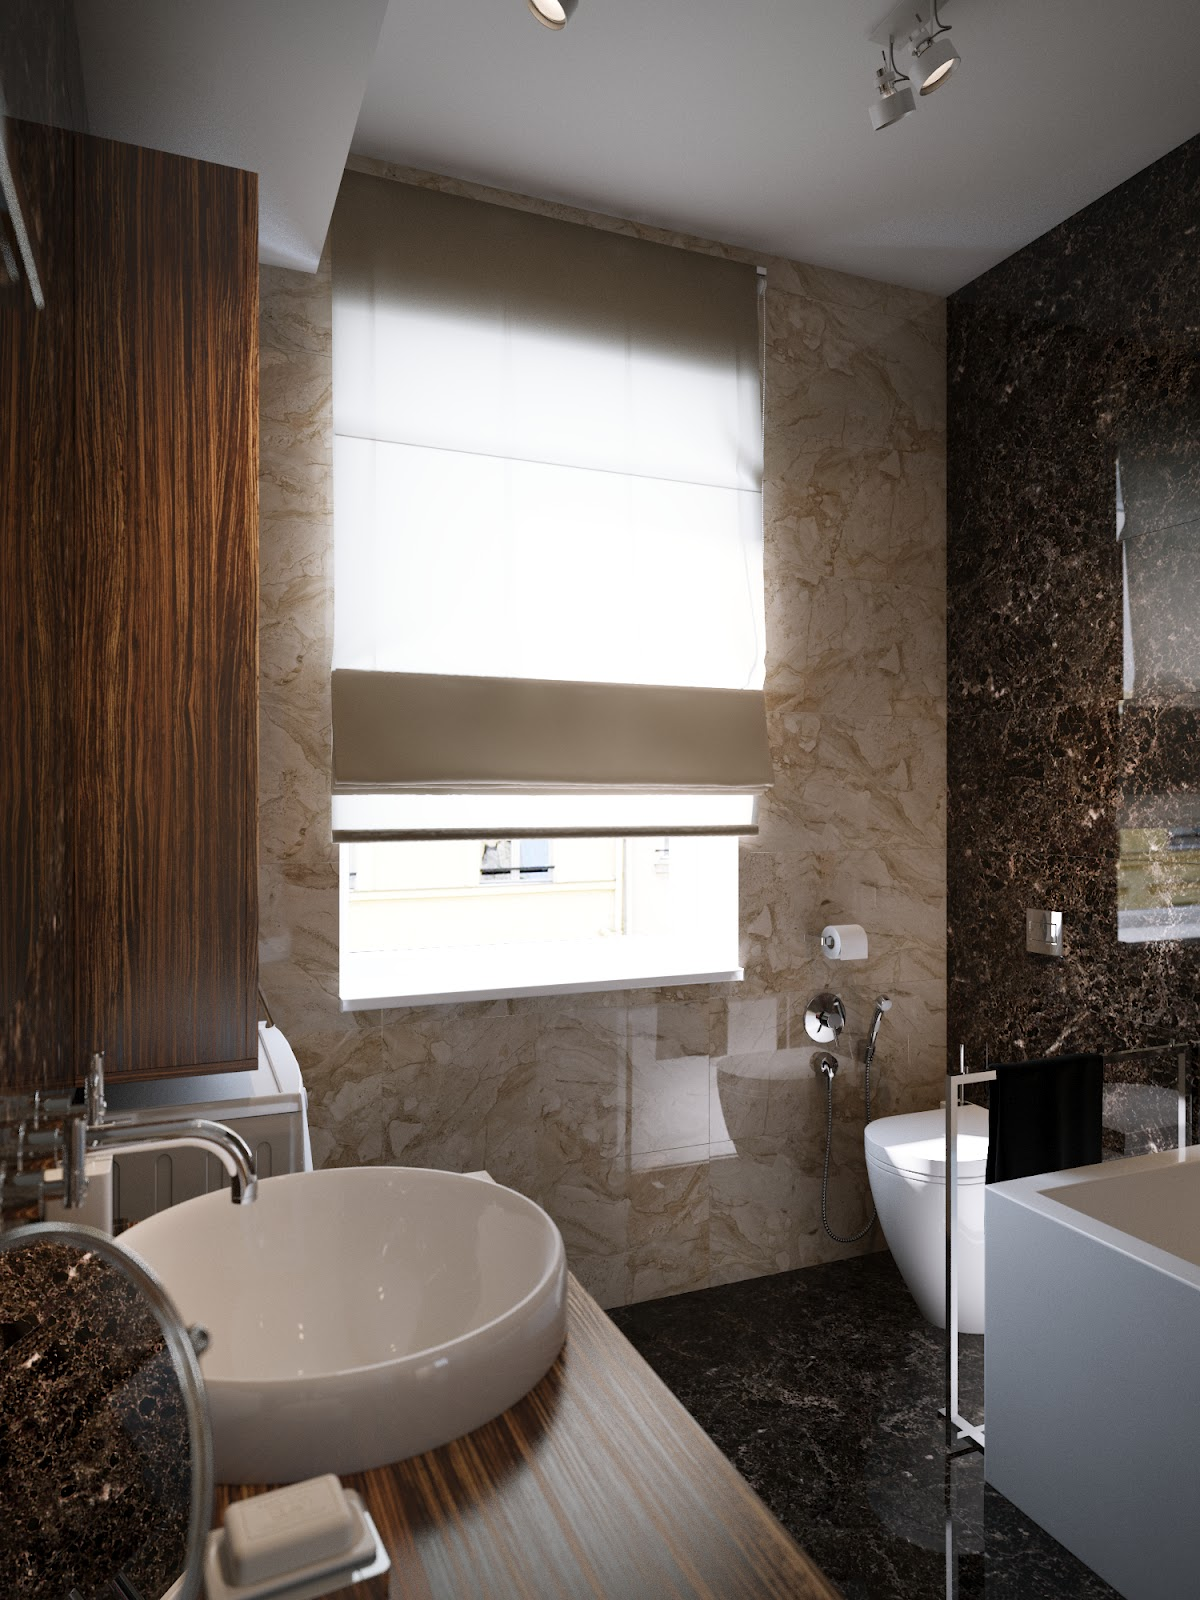 Modern bathroom design scheme interior design ideas for Bathroom modern design